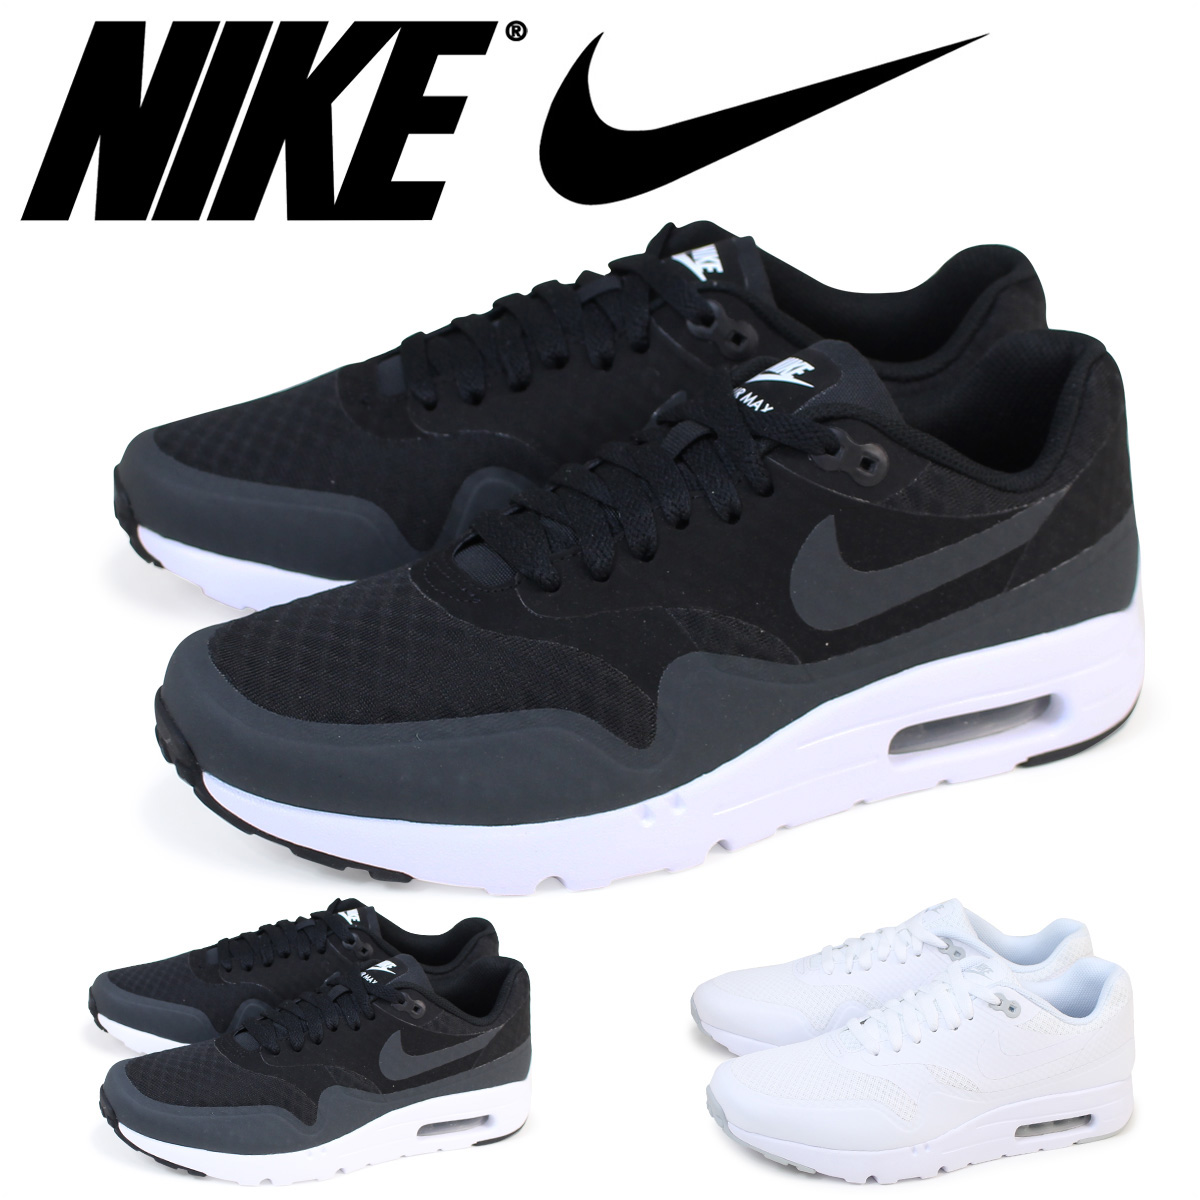 Nike NIKE Air Max men sneakers AIR MAX 1 ULTRA ESSENTIAL 819,476 004 819,476 105 shoes black white [the 124 additional arrival]